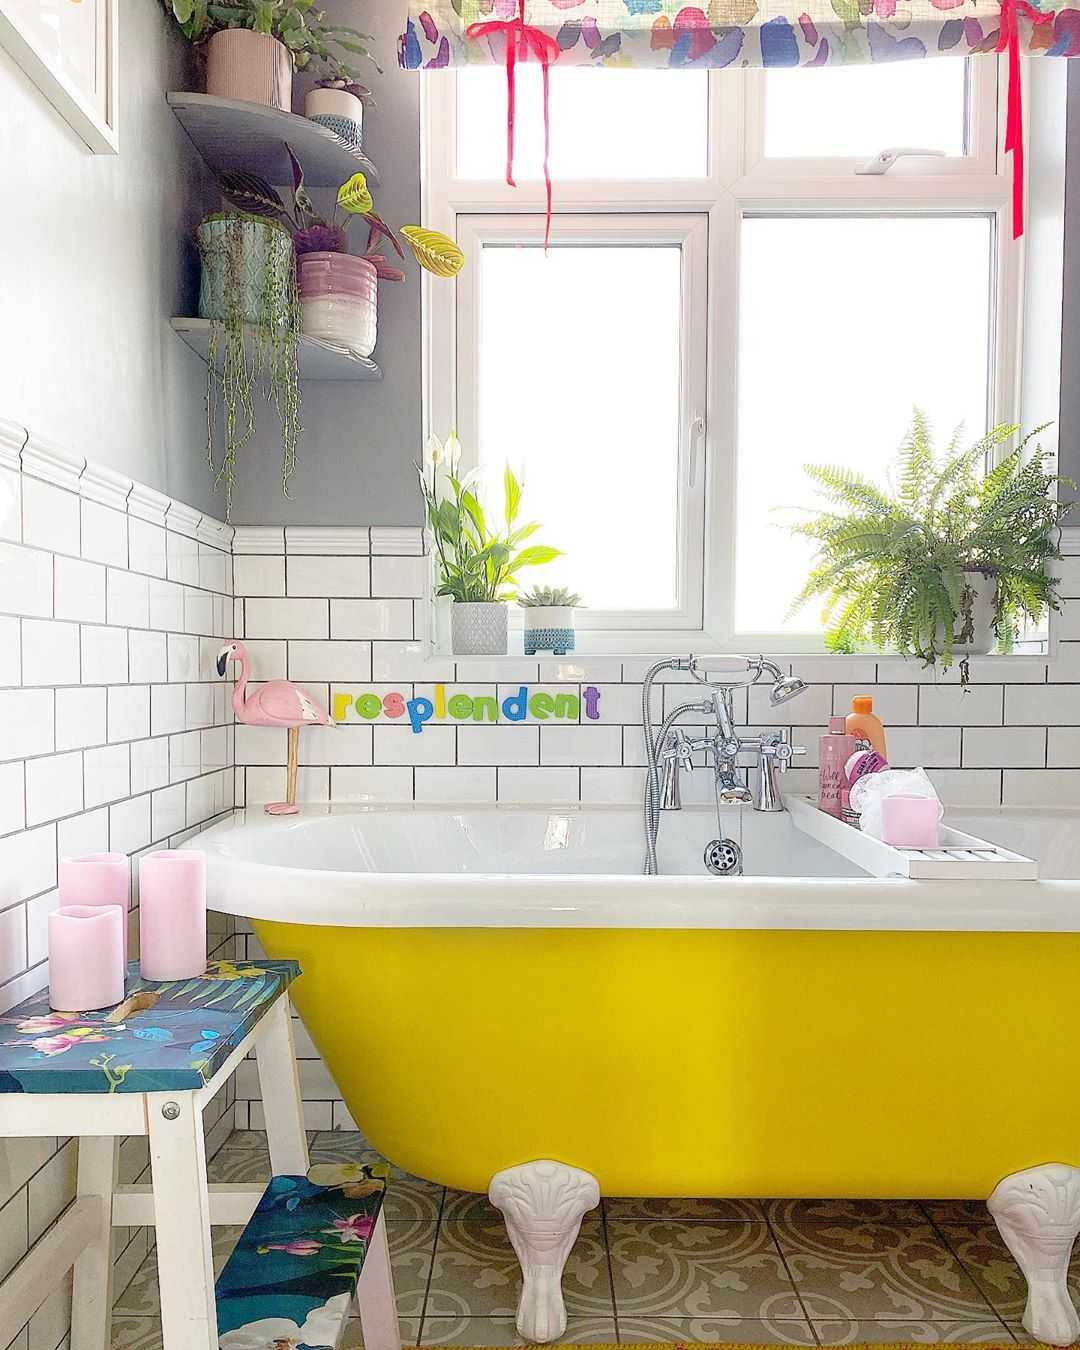 Yellow bath tub